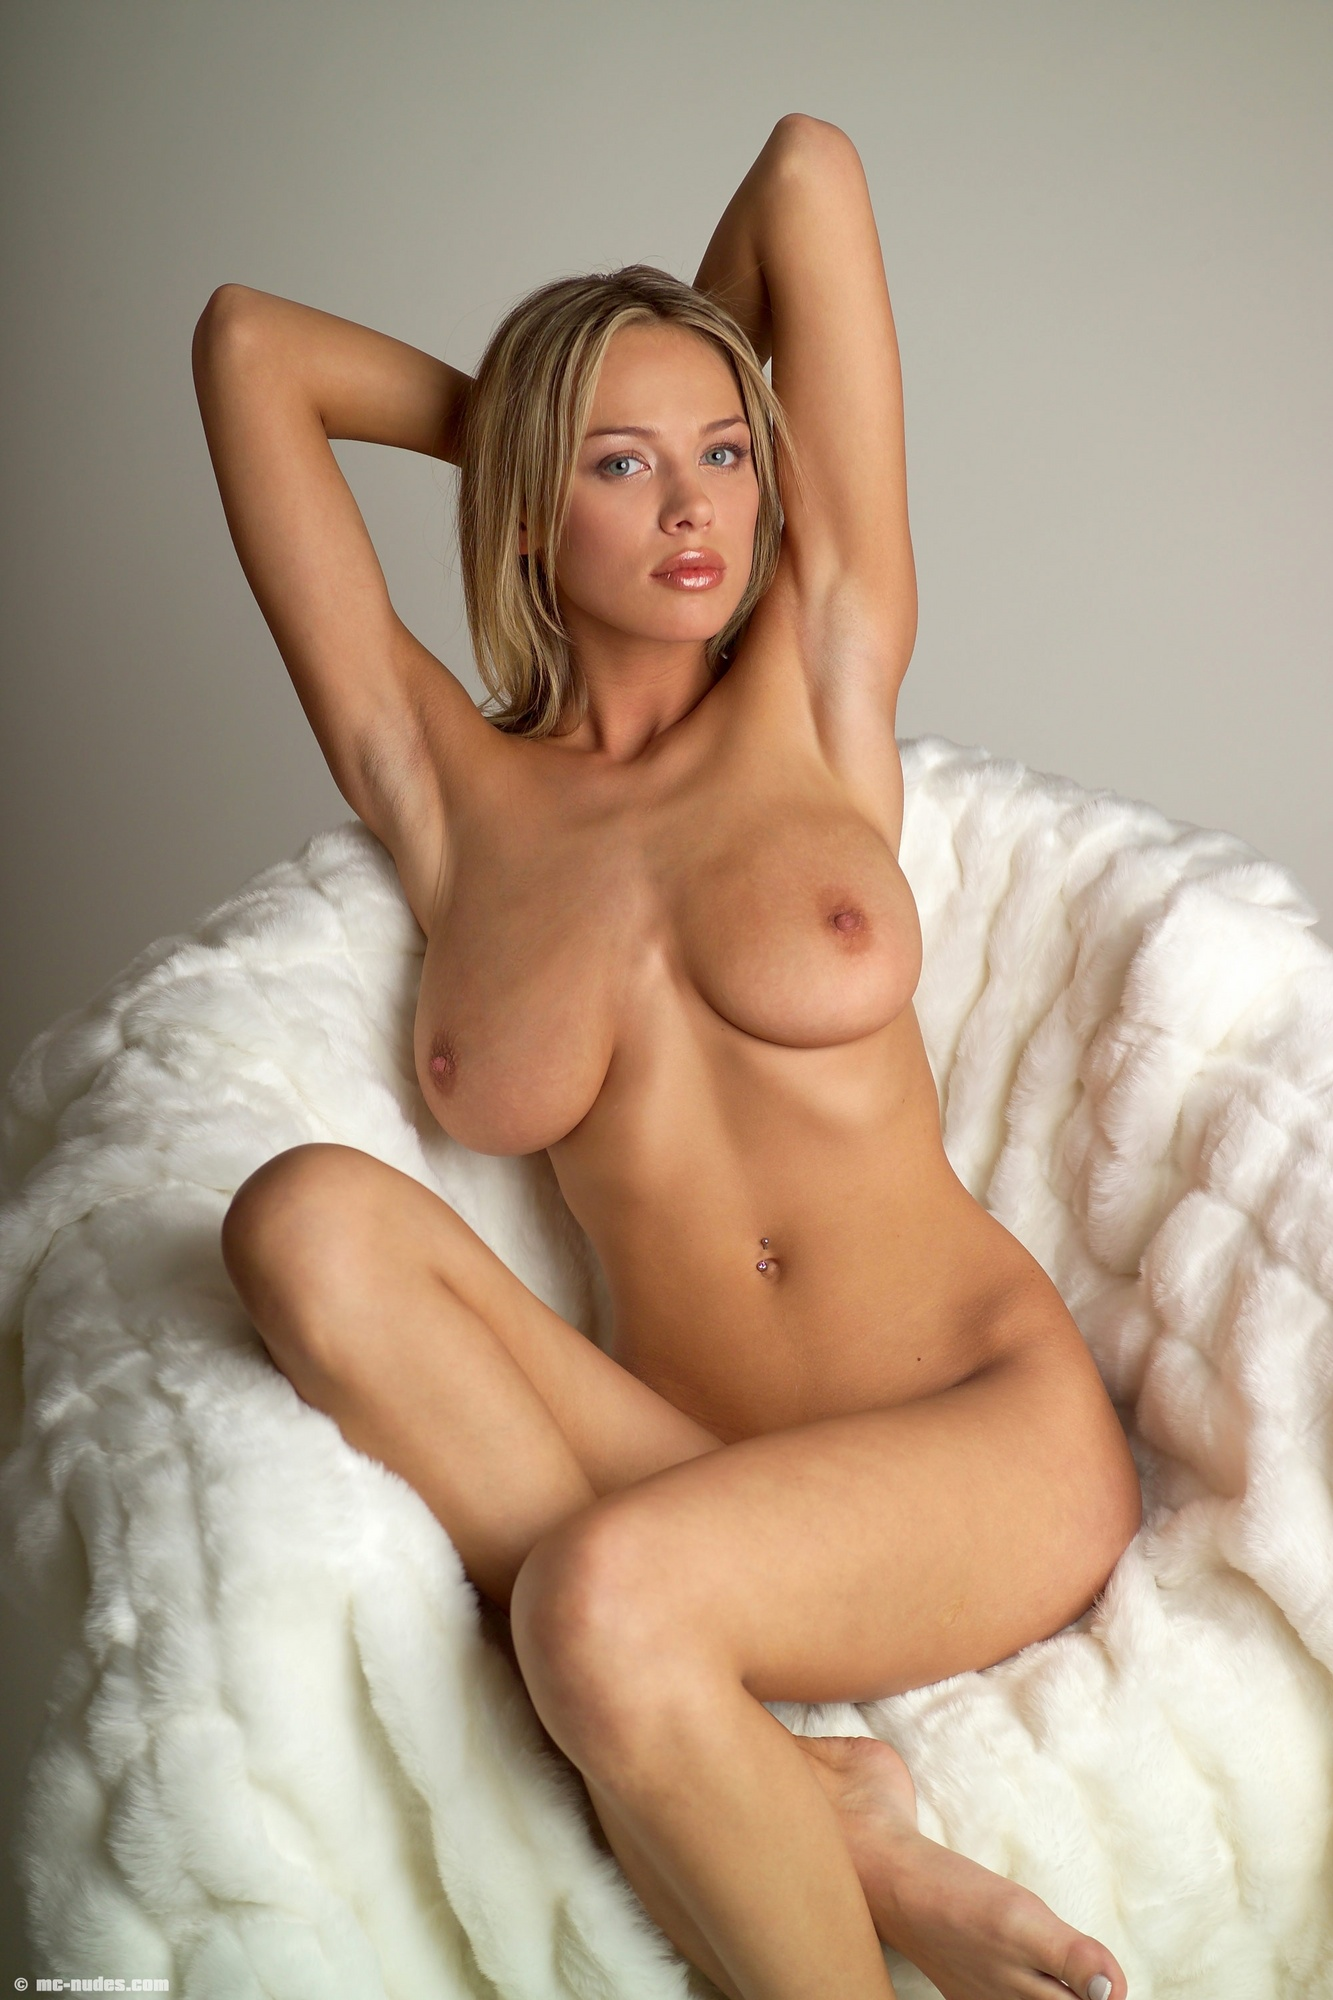 Anastasia shcheglova blonde russian model gets naked